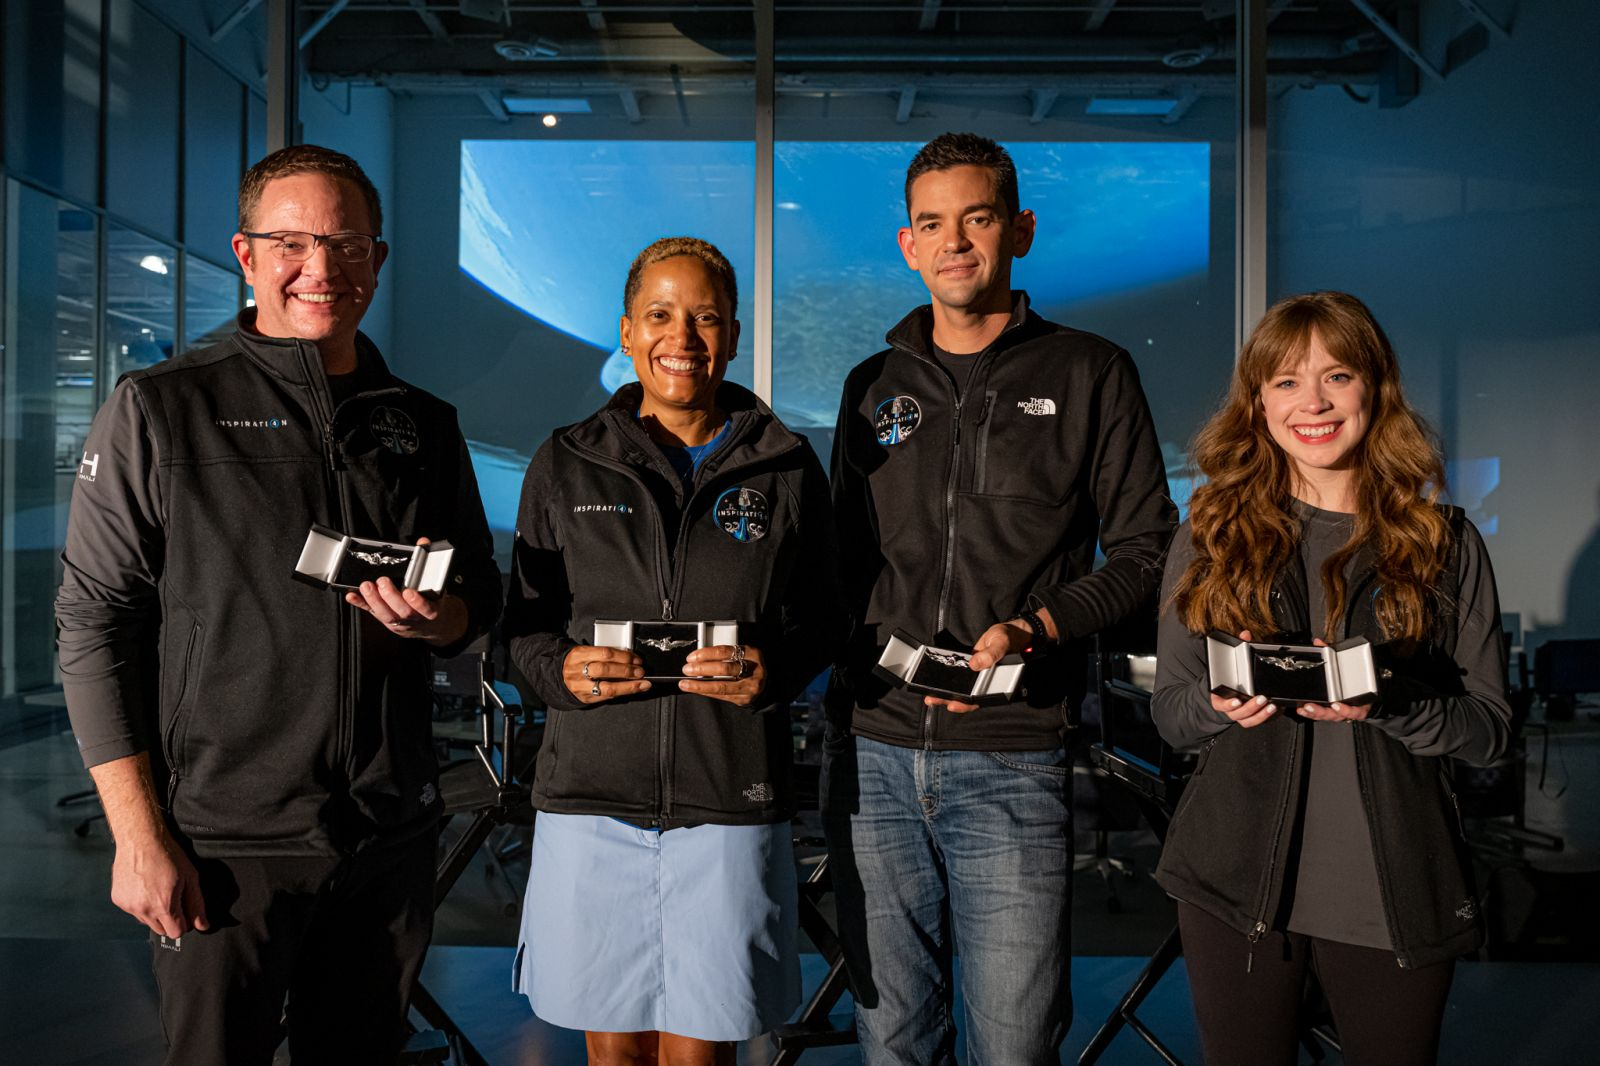 """The Inspiration4 crew receives their """"Dragon wings"""" during a post-flight event at SpaceX headquarters in Hawthorne, California. Credit: Inspiration4 / John Kraus"""